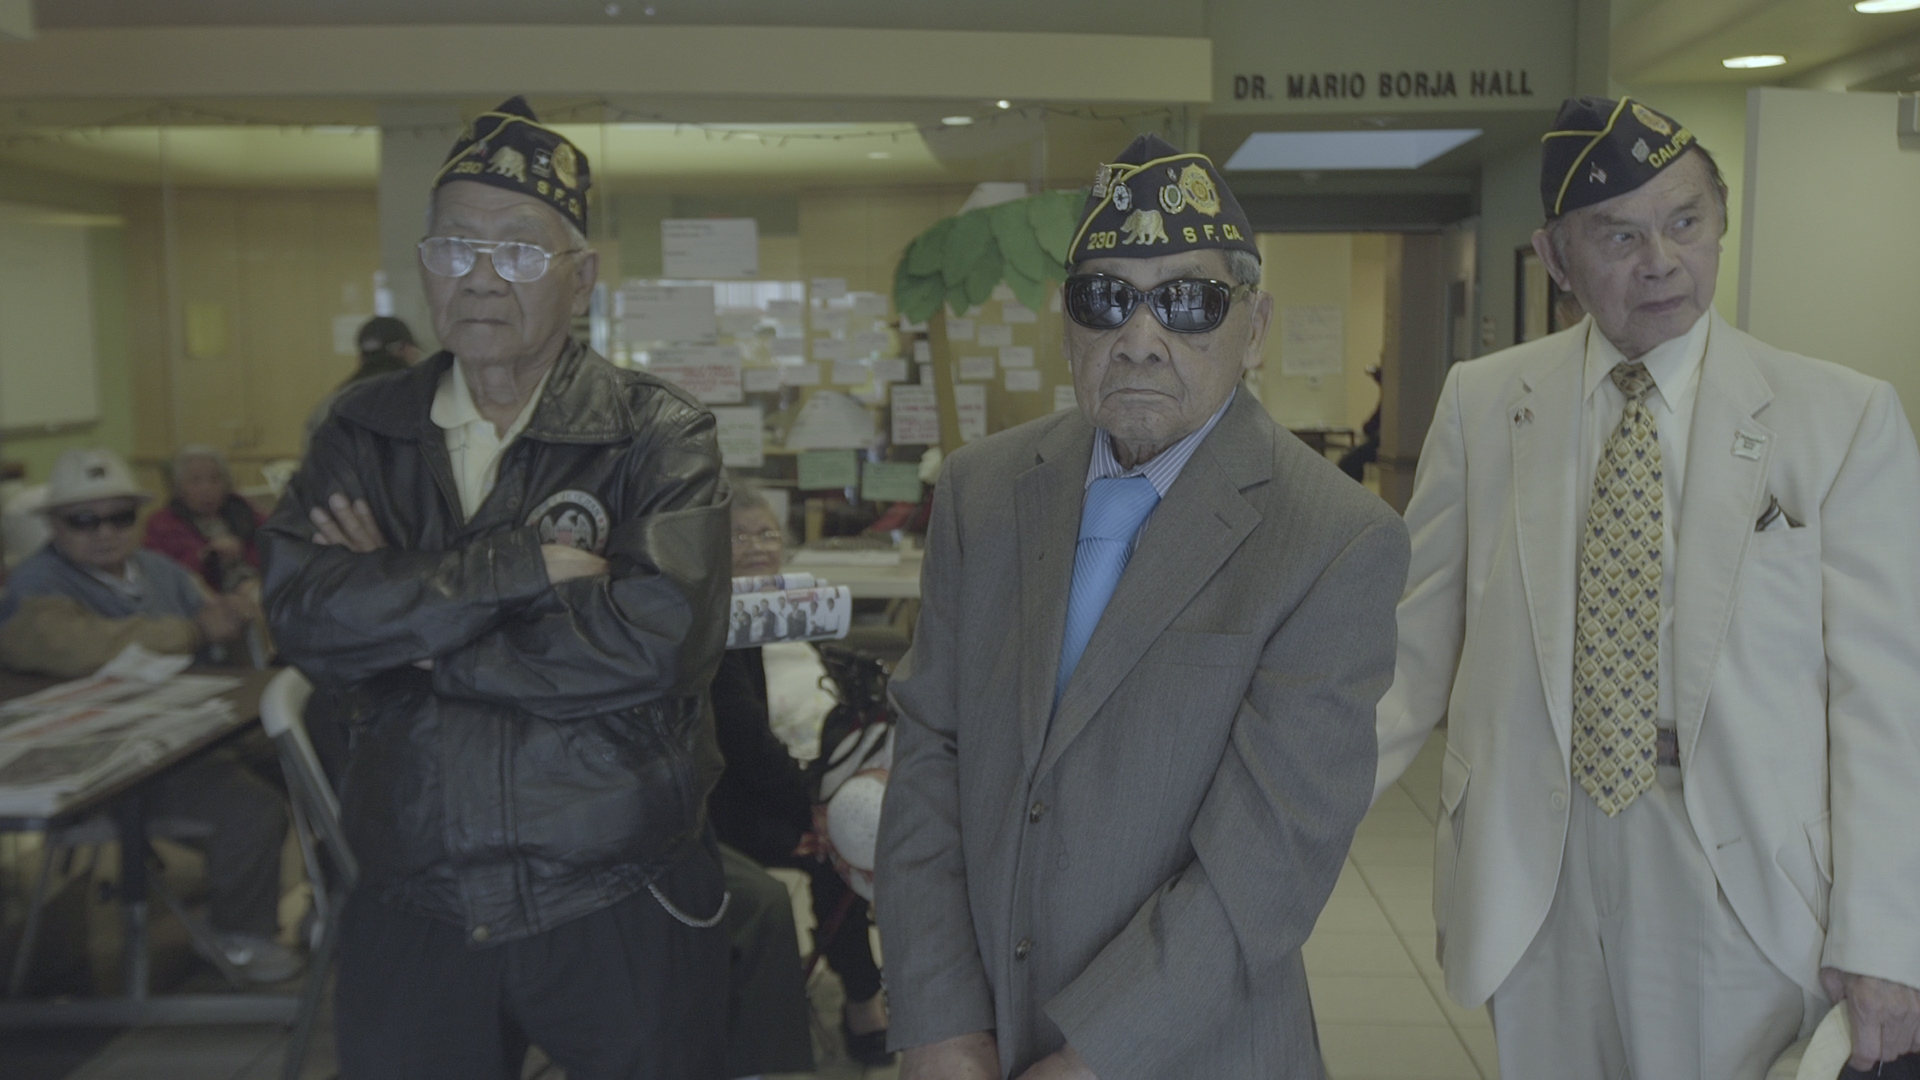 Three people stand wearing veteran hats